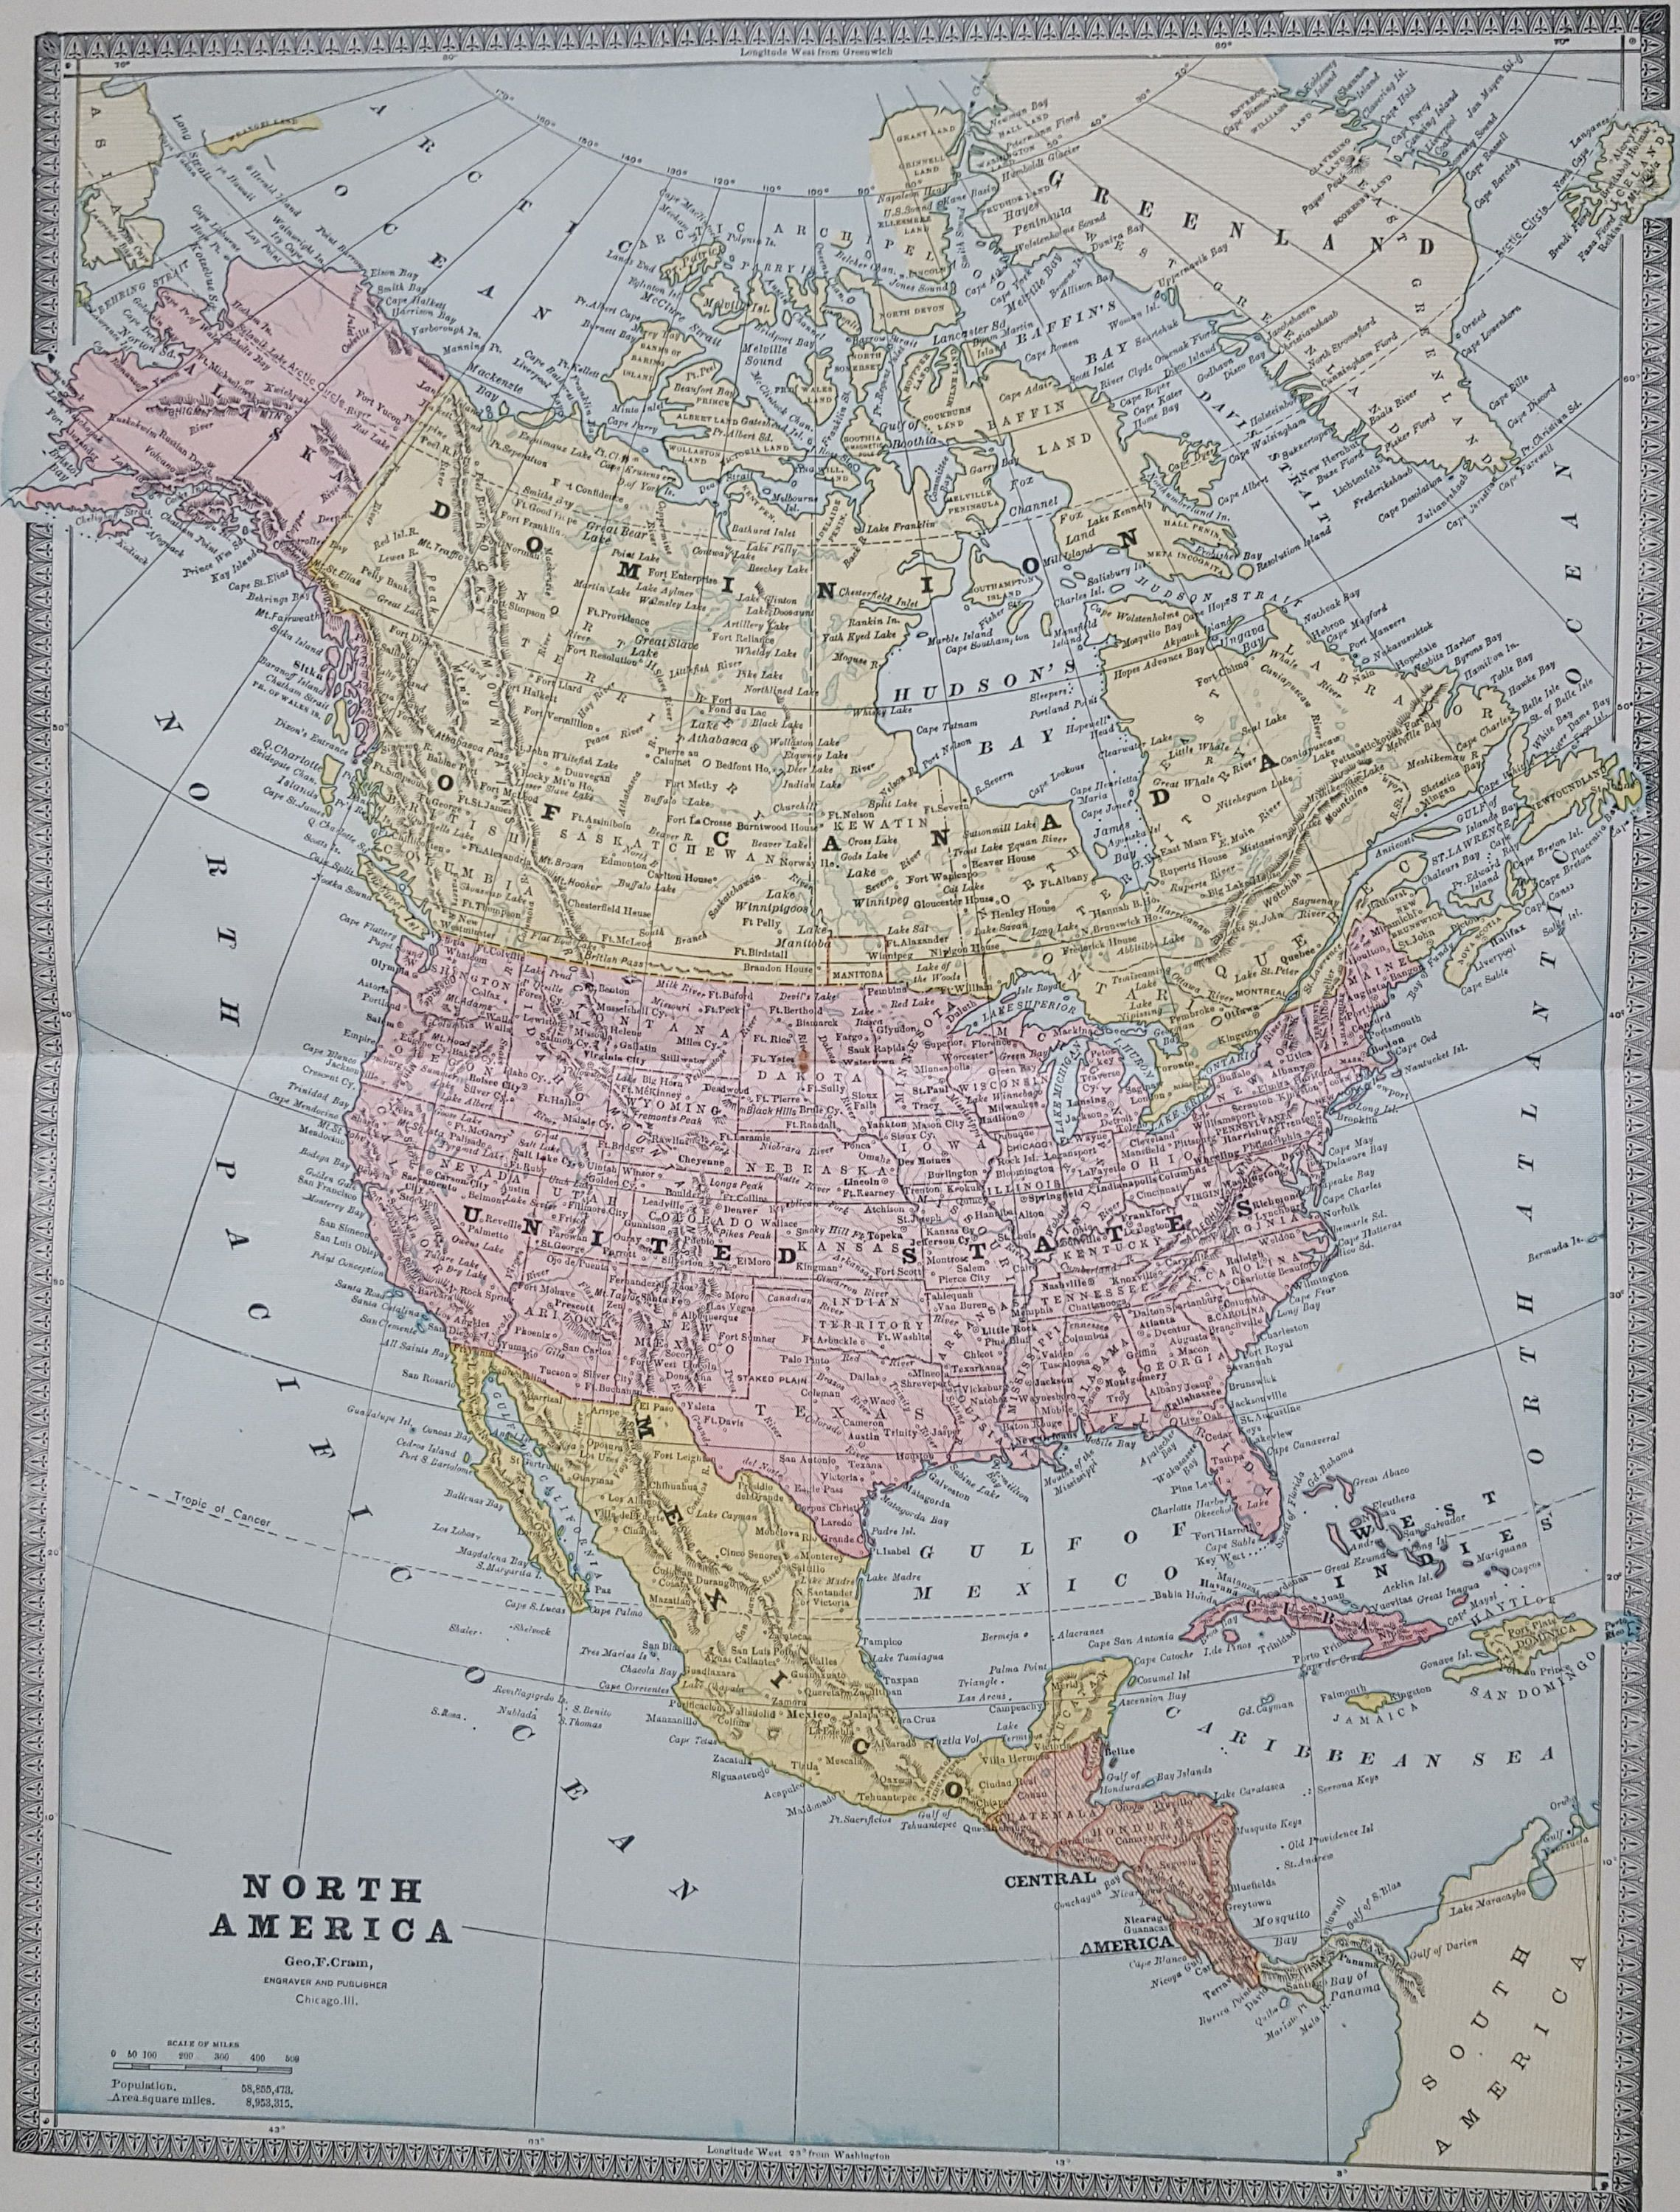 Large Antique Map Of North America USA Canada Mexico - Atlas map of usa and canada